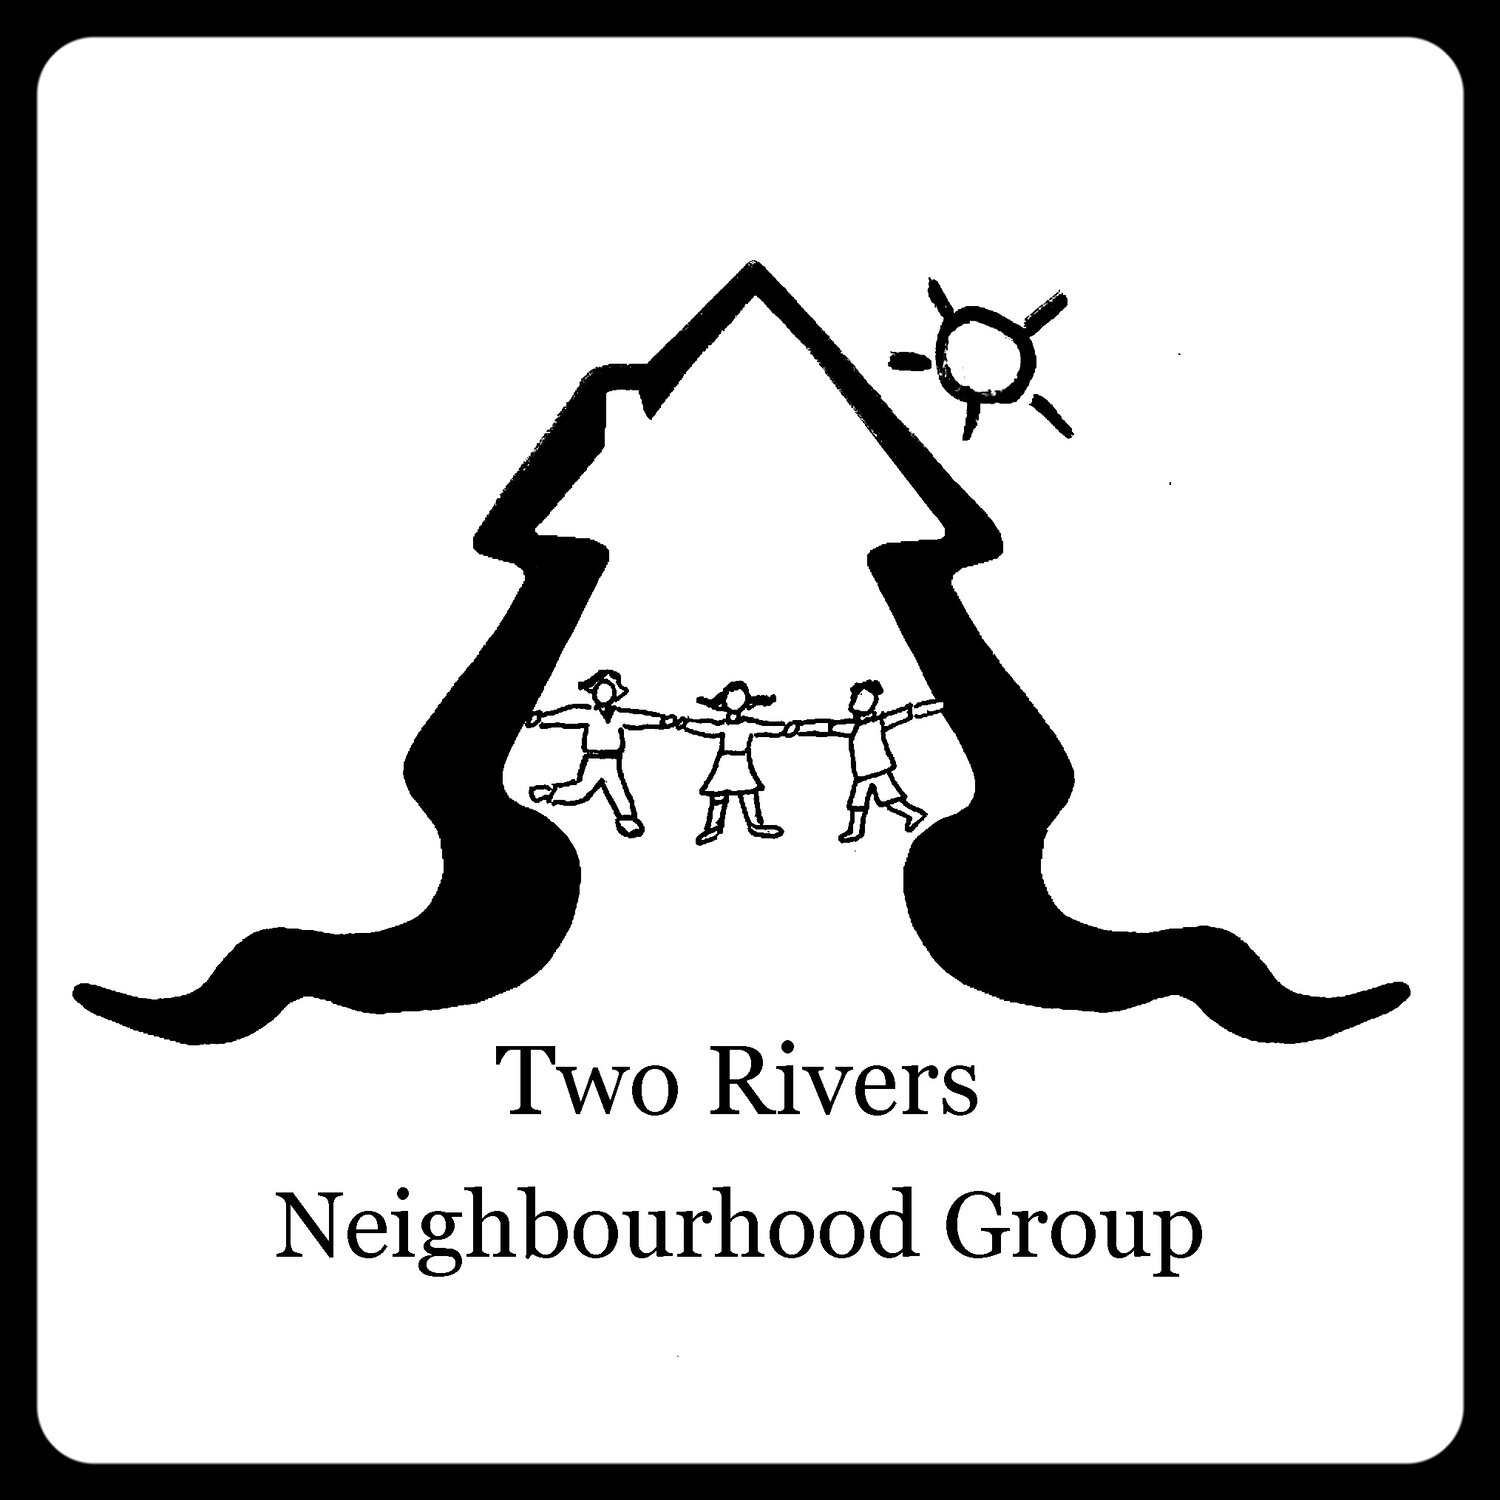 Two Rivers Neighbourhood Group